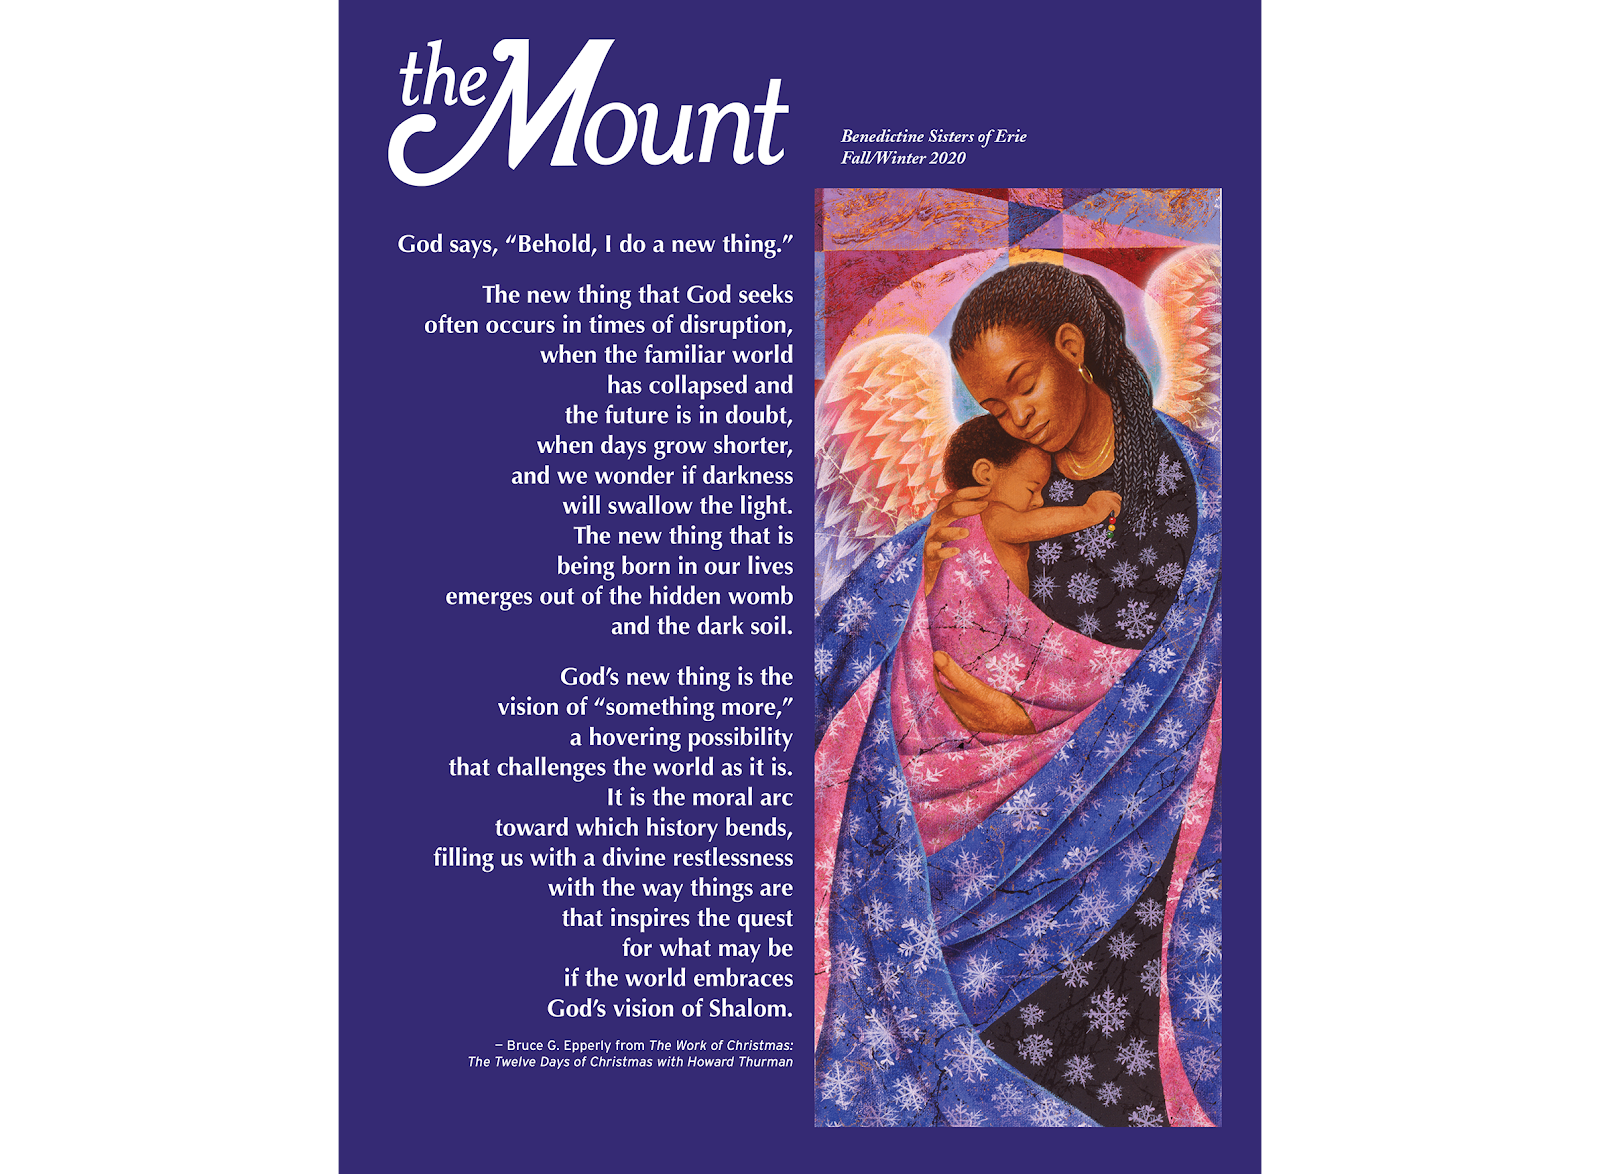 The Mount magazine